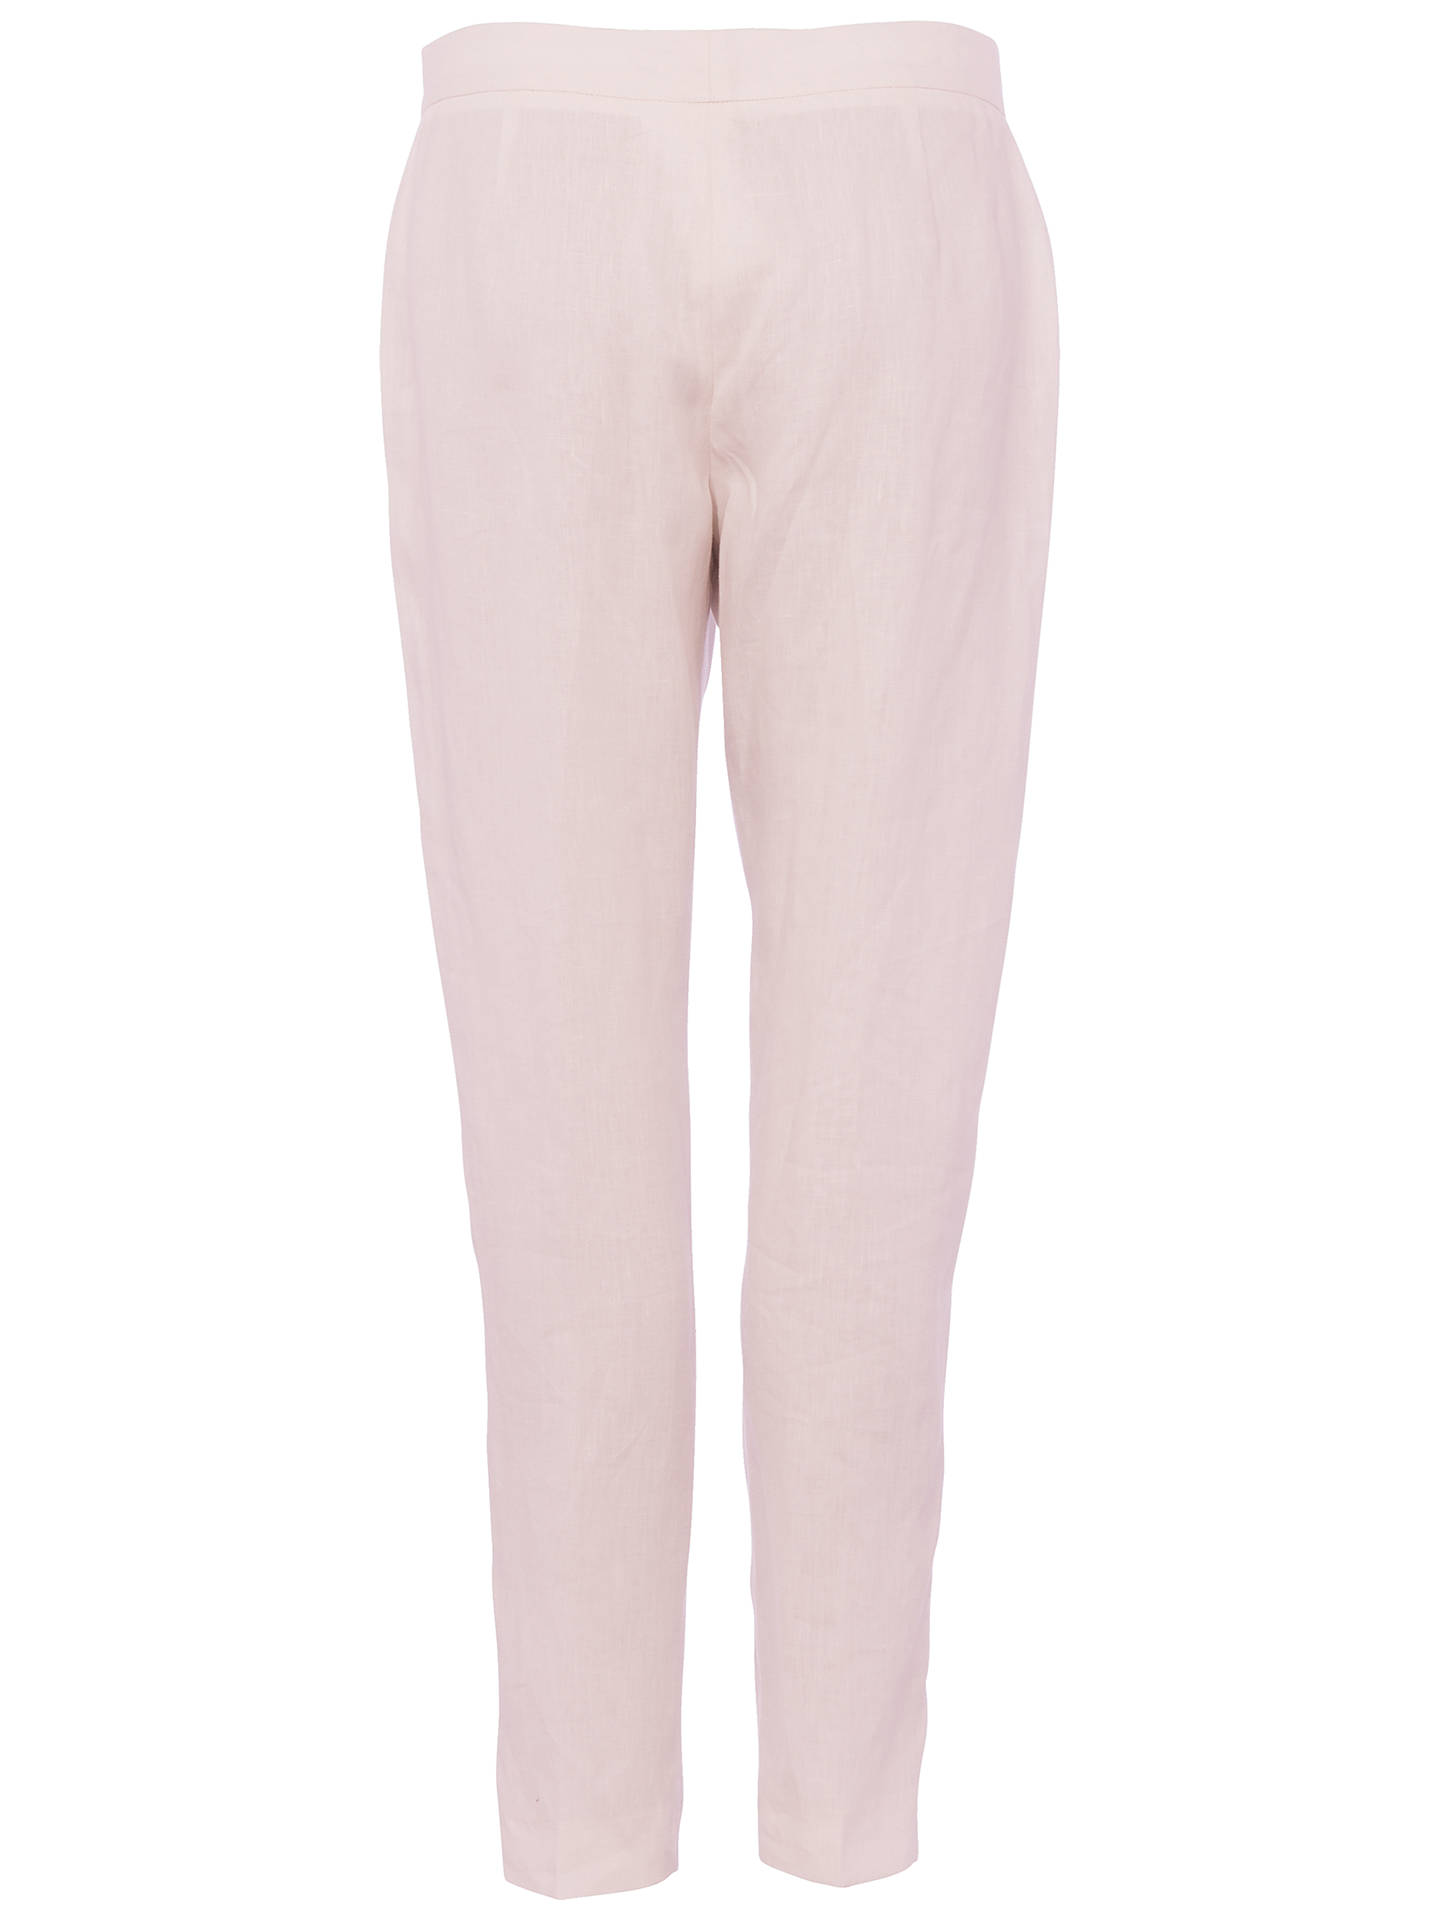 BuyFrench Connection Haiti Linen Trousers, Barely Pink, 8 Online at johnlewis.com